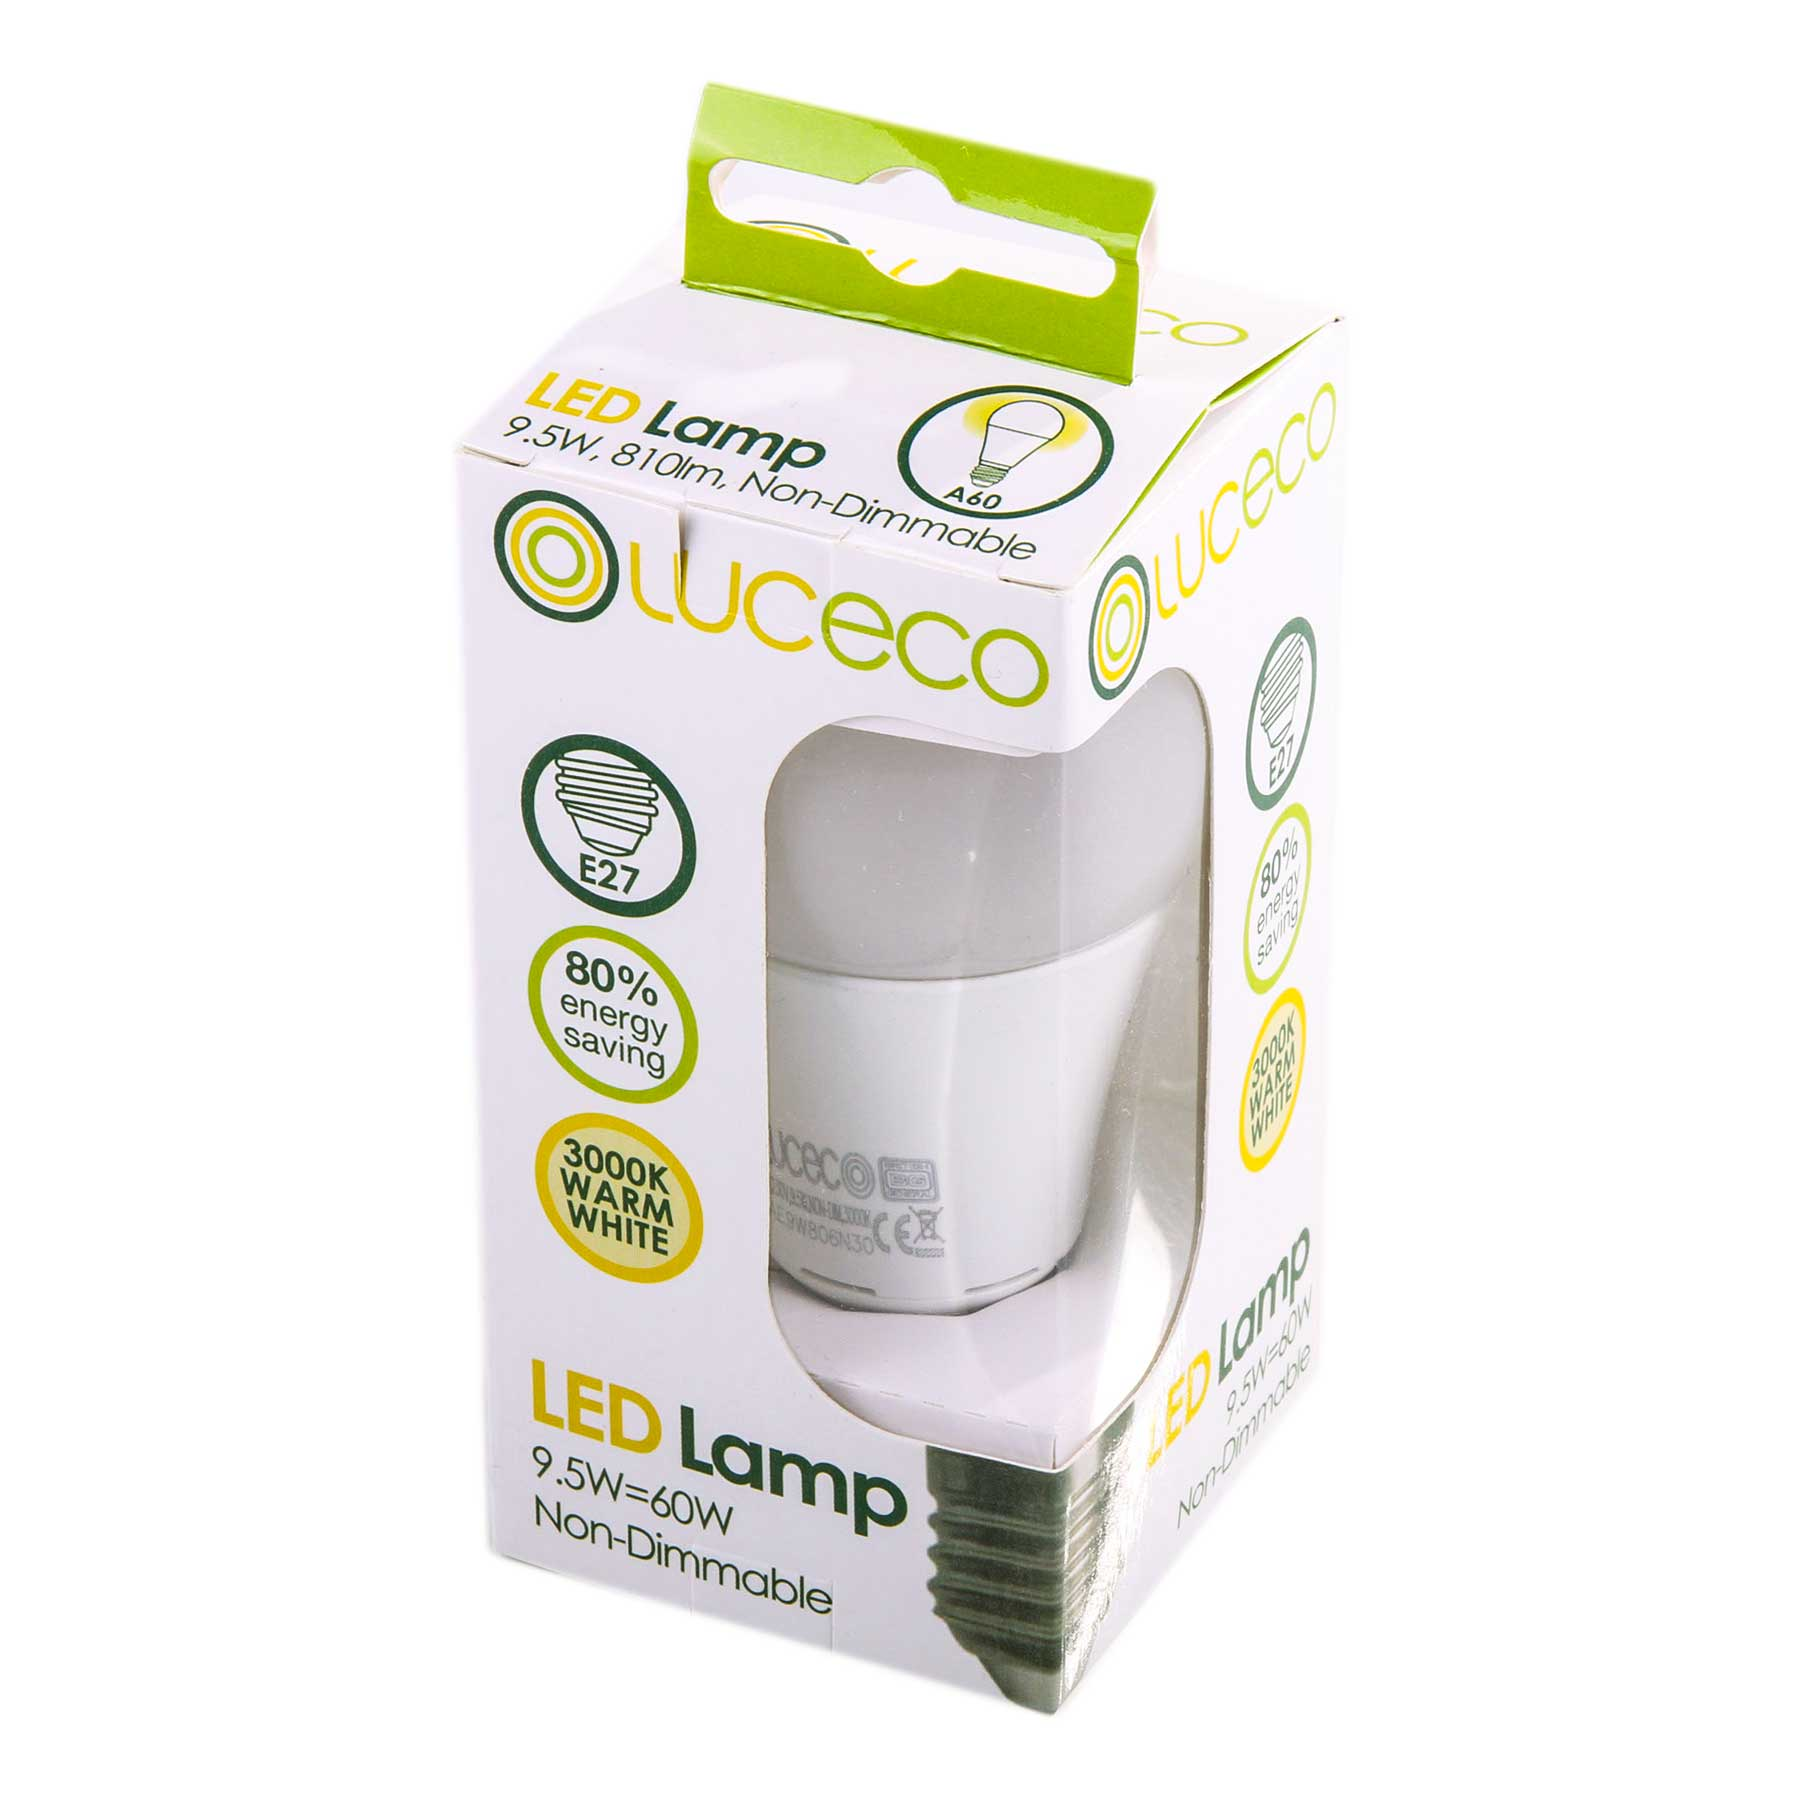 Led Lamp E27 Fitting Luceco Led Light Bulb 9 5w 810 Lumen Screw Cap Fitting E27